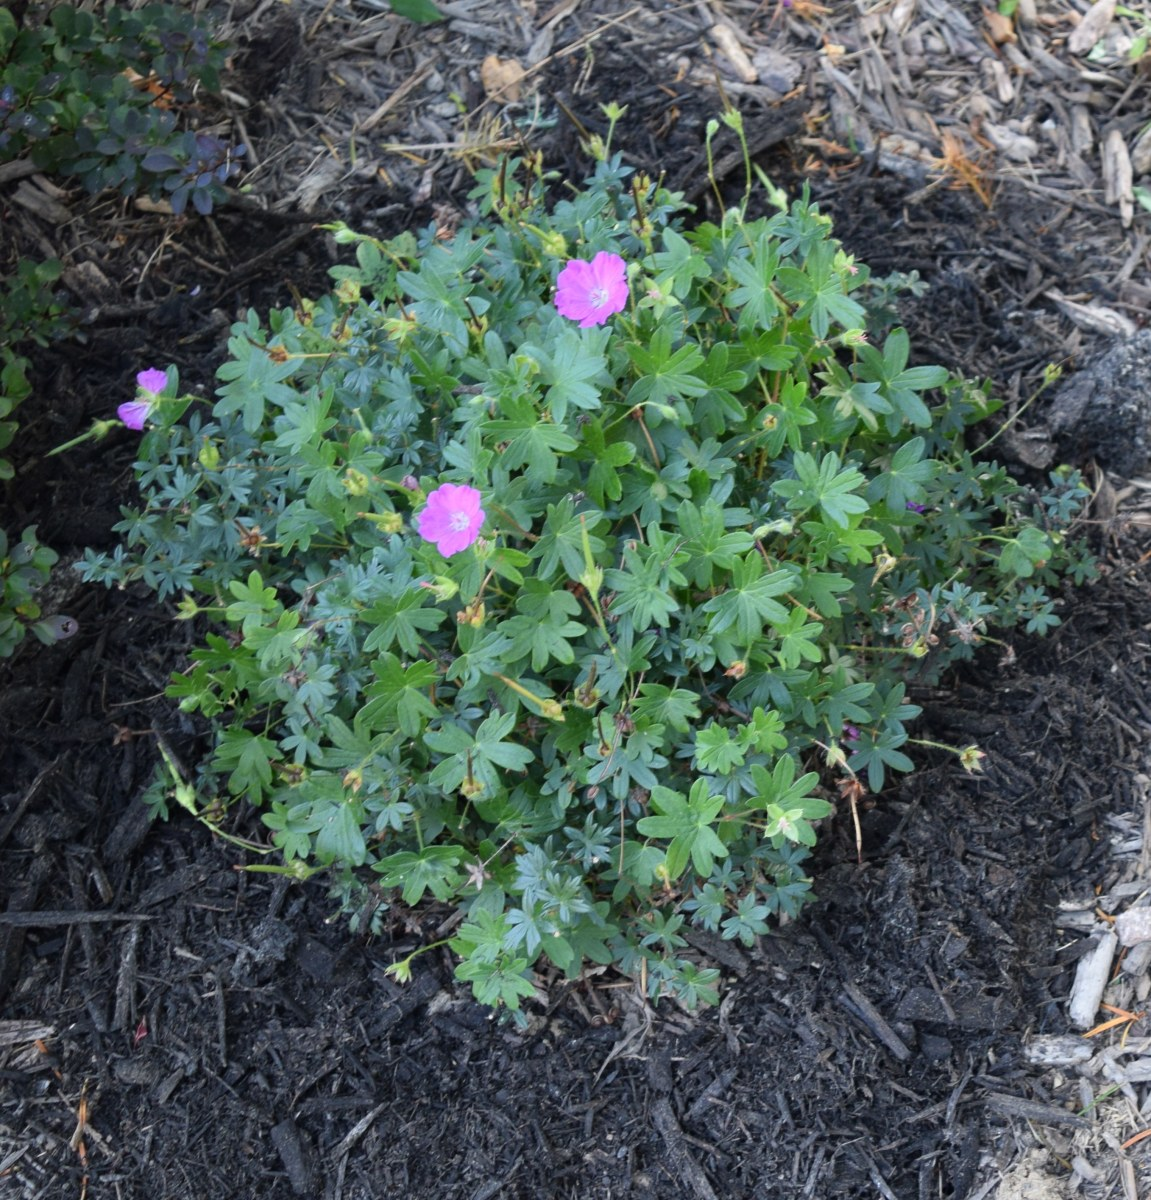 Mulch vs. Ground Cover: Which Should I Use?